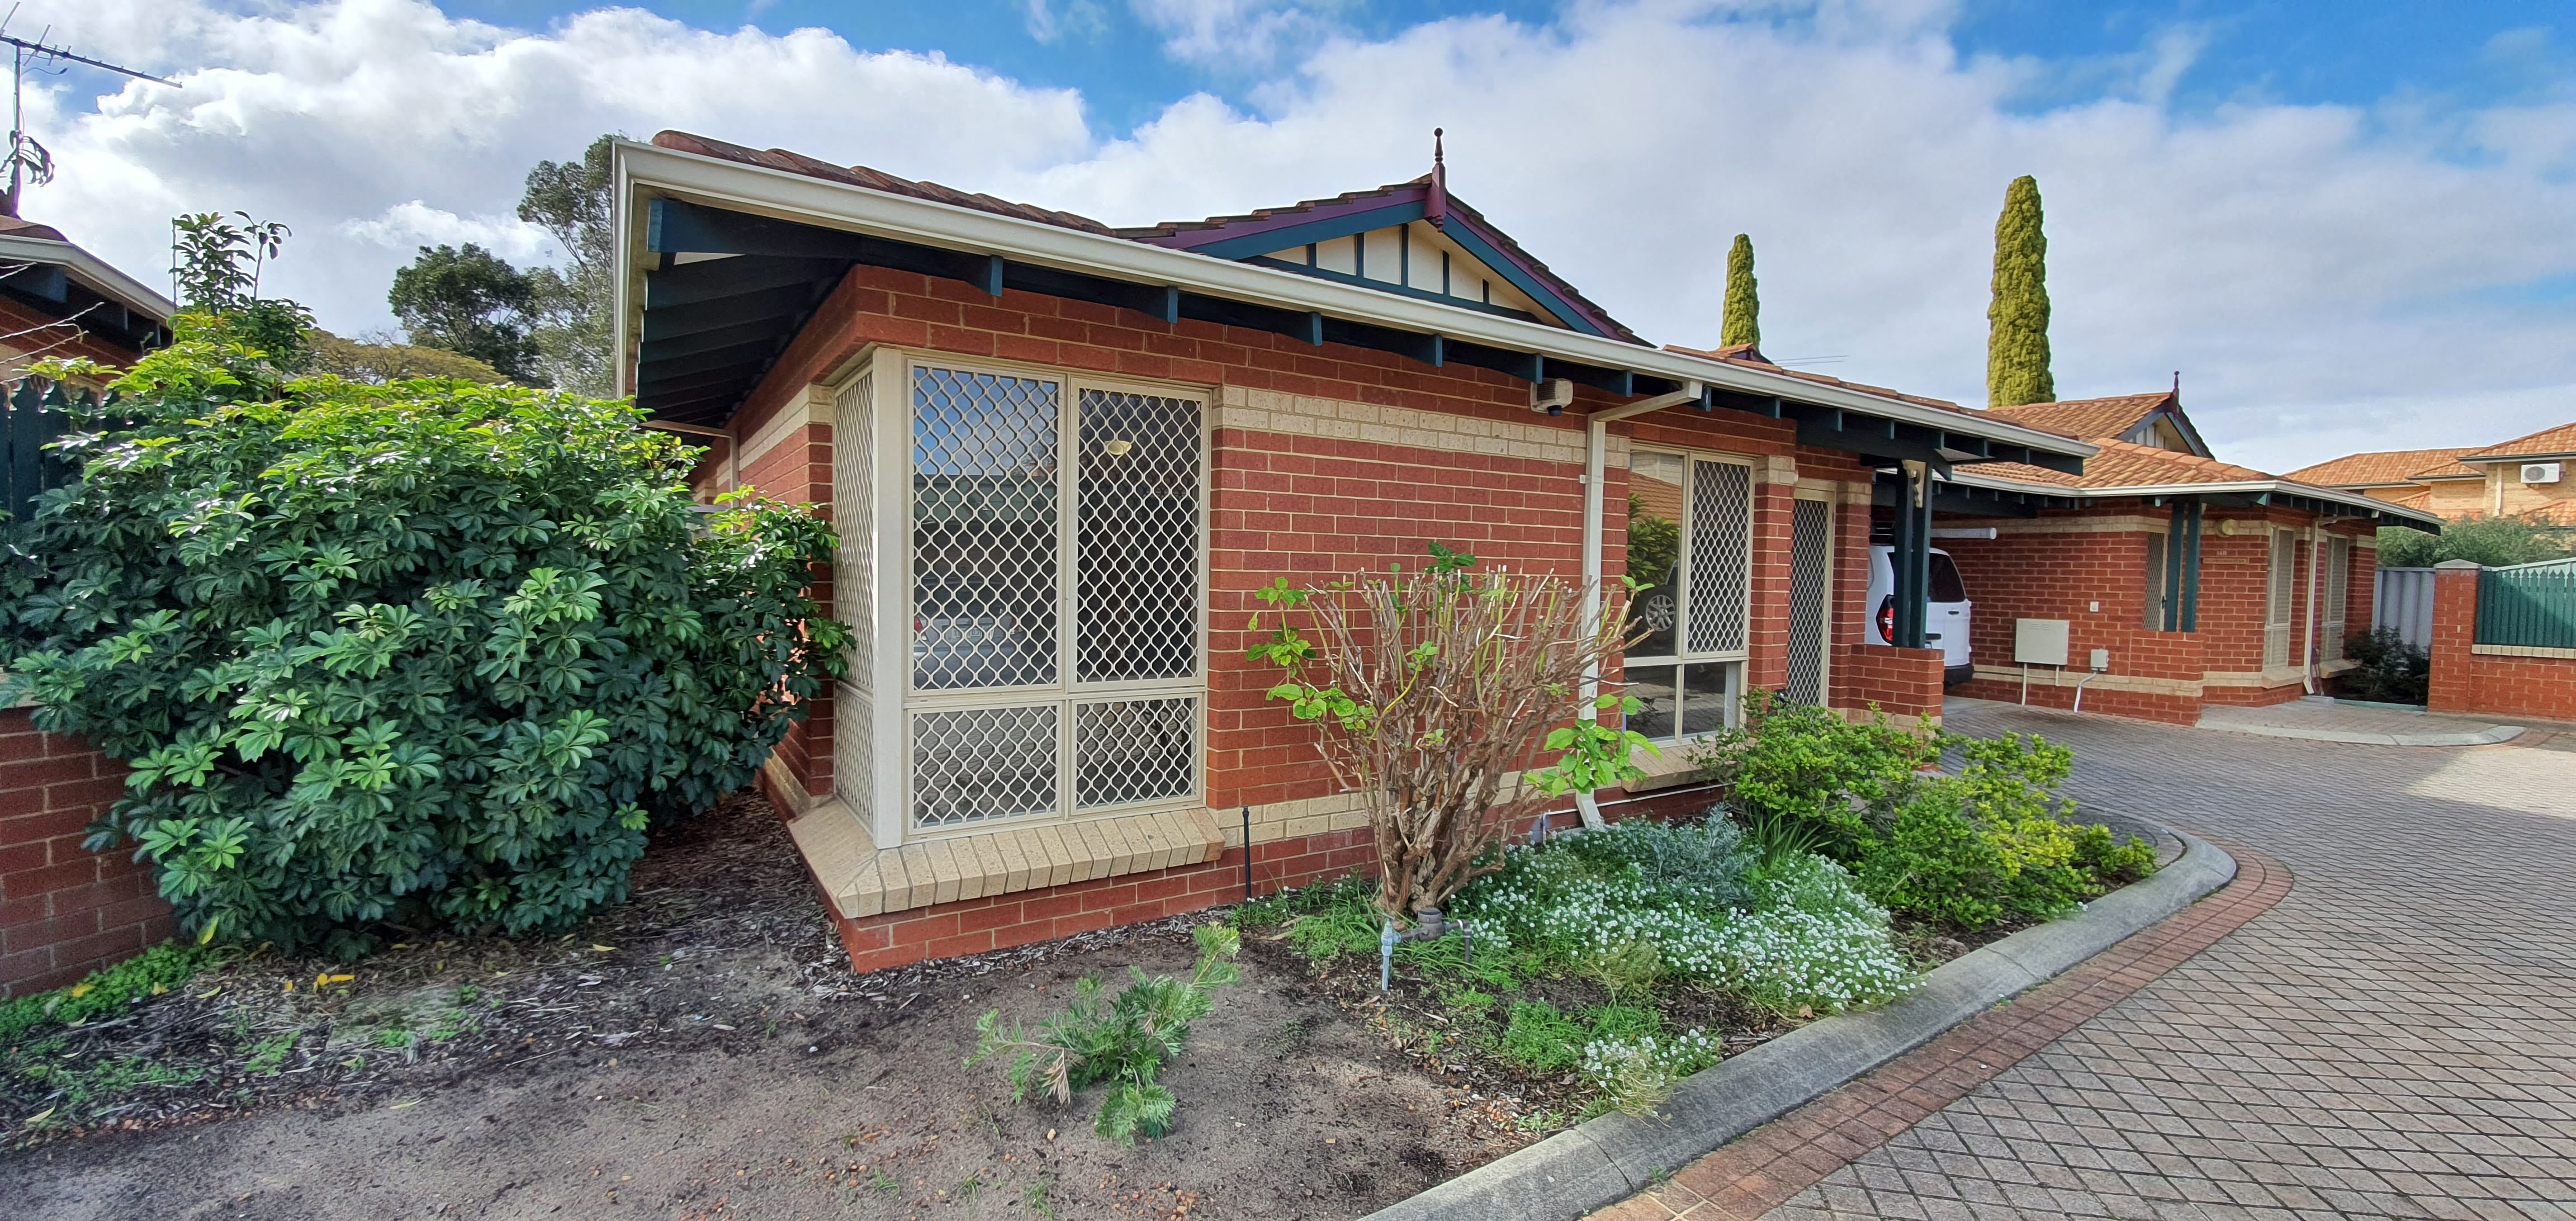 Under Offer! 14A Francisco Street – Rivervale